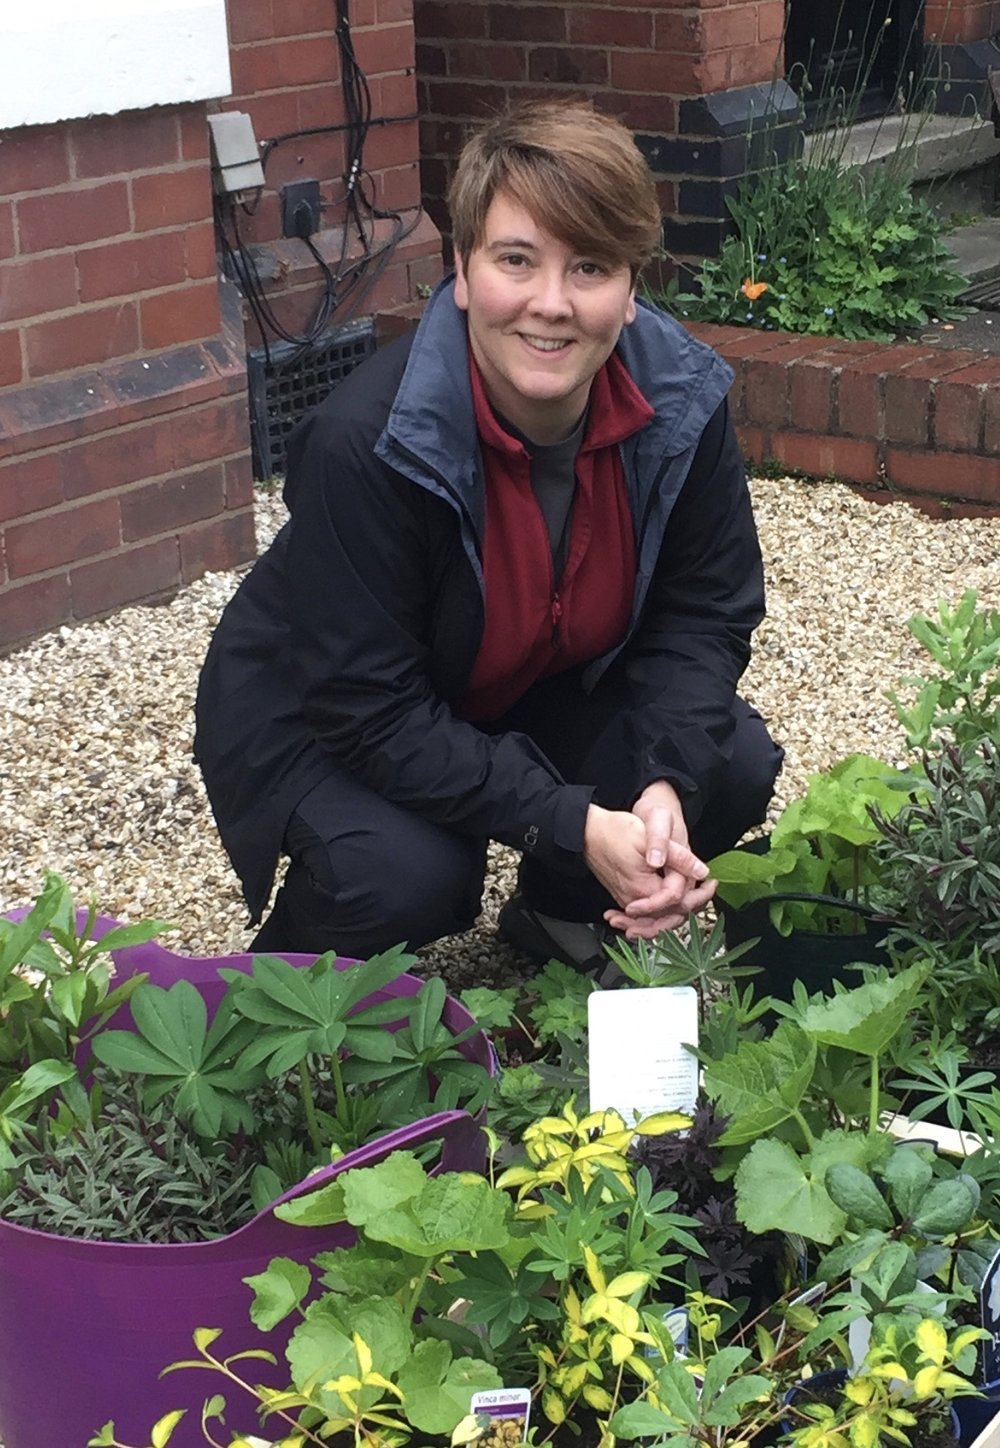 - I am a Self-employed, female Professional Gardener and Designer based in the West Midlands.I have the industry recognised RHS Level 2 Diploma in the Principles and Practices of Horticulture.I studied at Birmingham Botanical Gardens and have several years experience.I design, plant and enhance gardens and any outside space.I will treat your garden and plants as if they were my own; with respect, love and care. I am also an allotment'er' and foodie. Public Liability Insured.